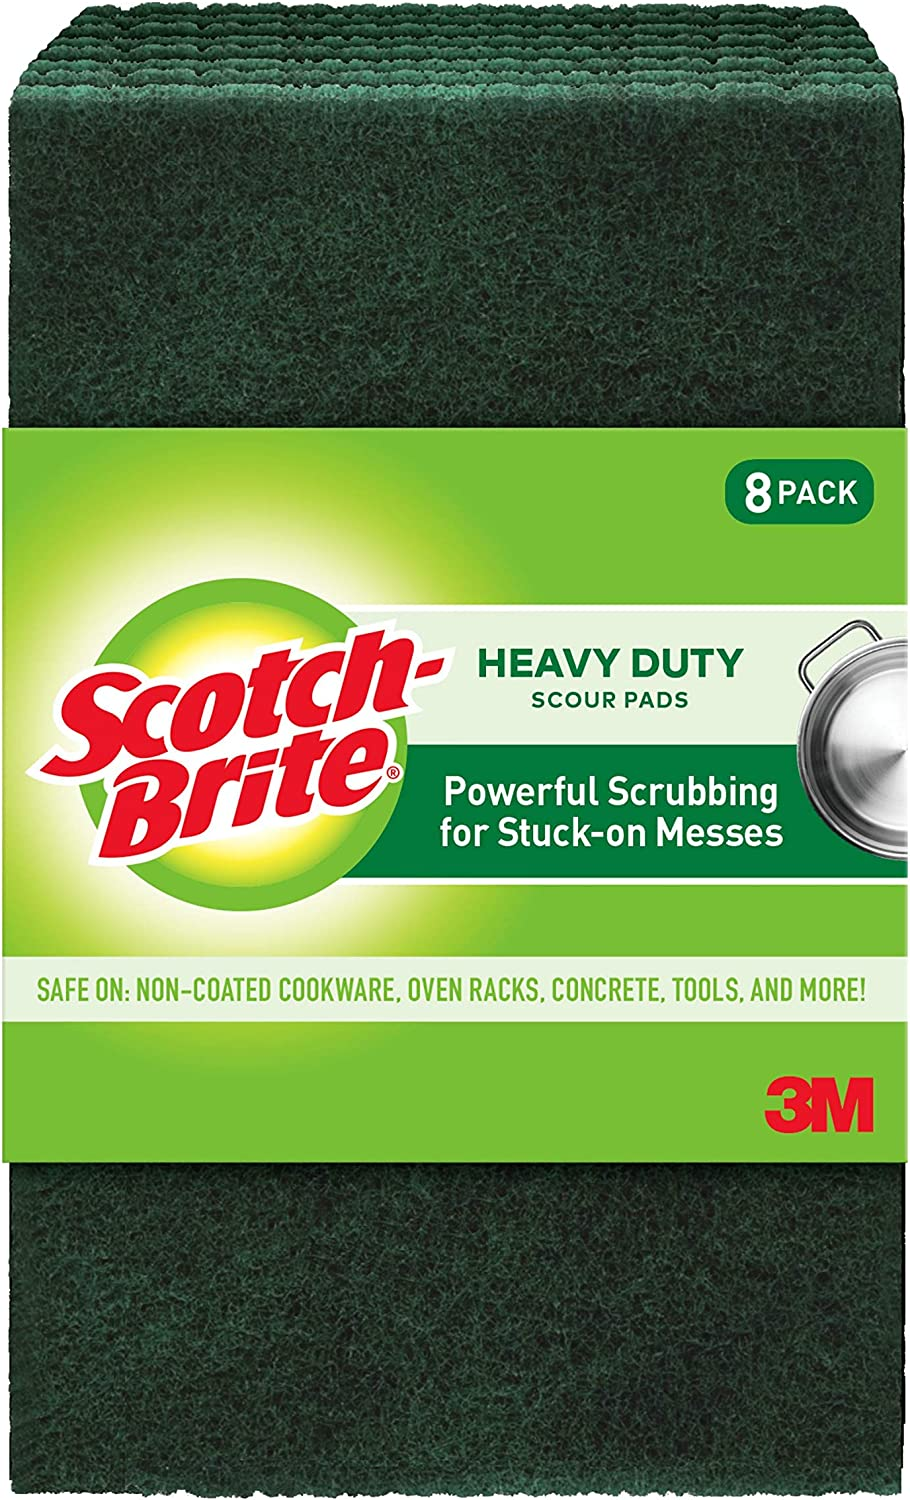 Amazon Com Scotch Brite Heavy Duty Scour Pads Ideal For Garden Tools And Grills 8 Pads Home Kitchen